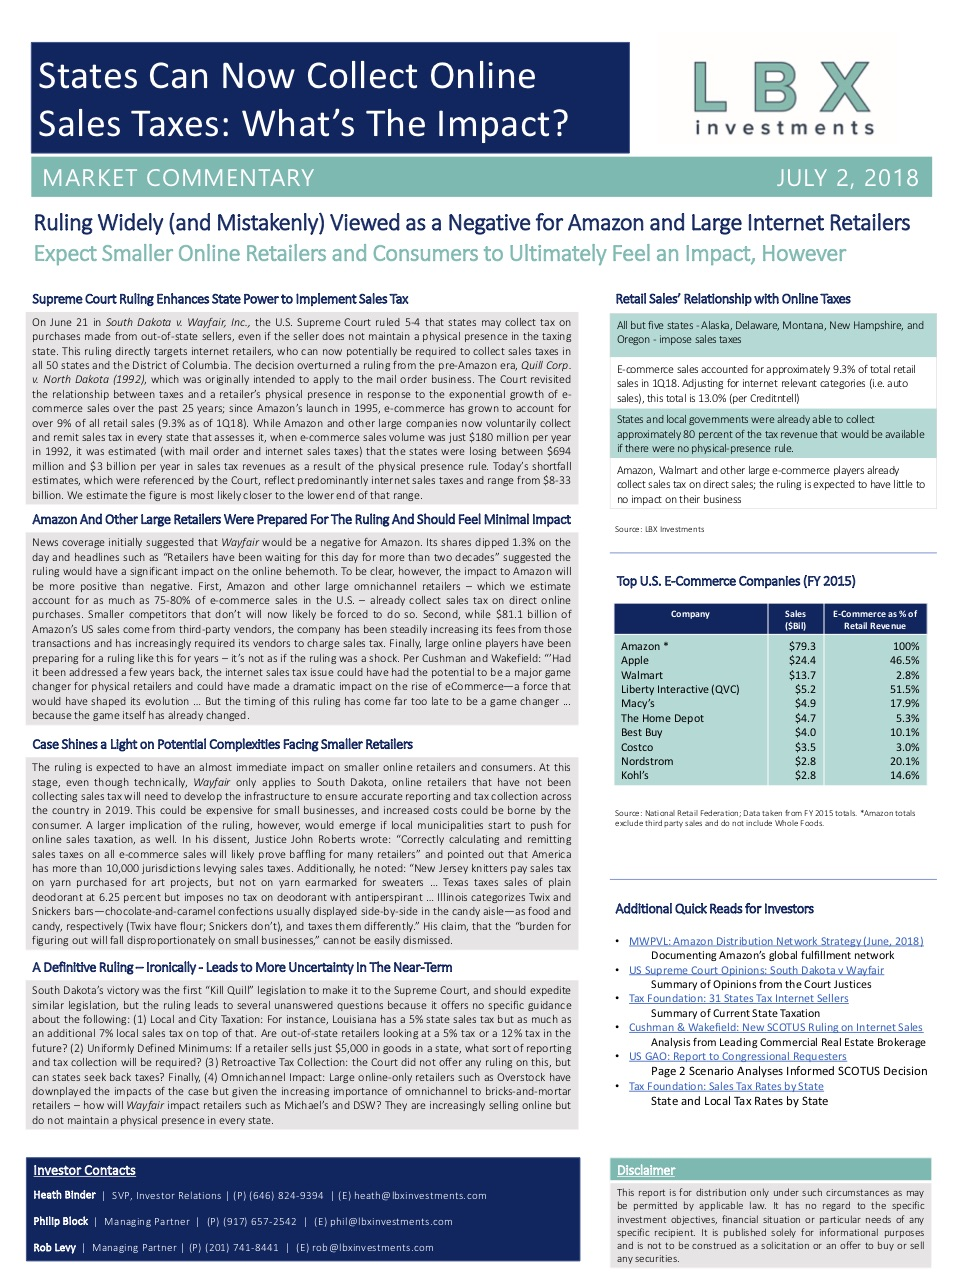 LBX Market Commentary - States Can Now Collect Online Sales Taxes (7.2.18).jpg